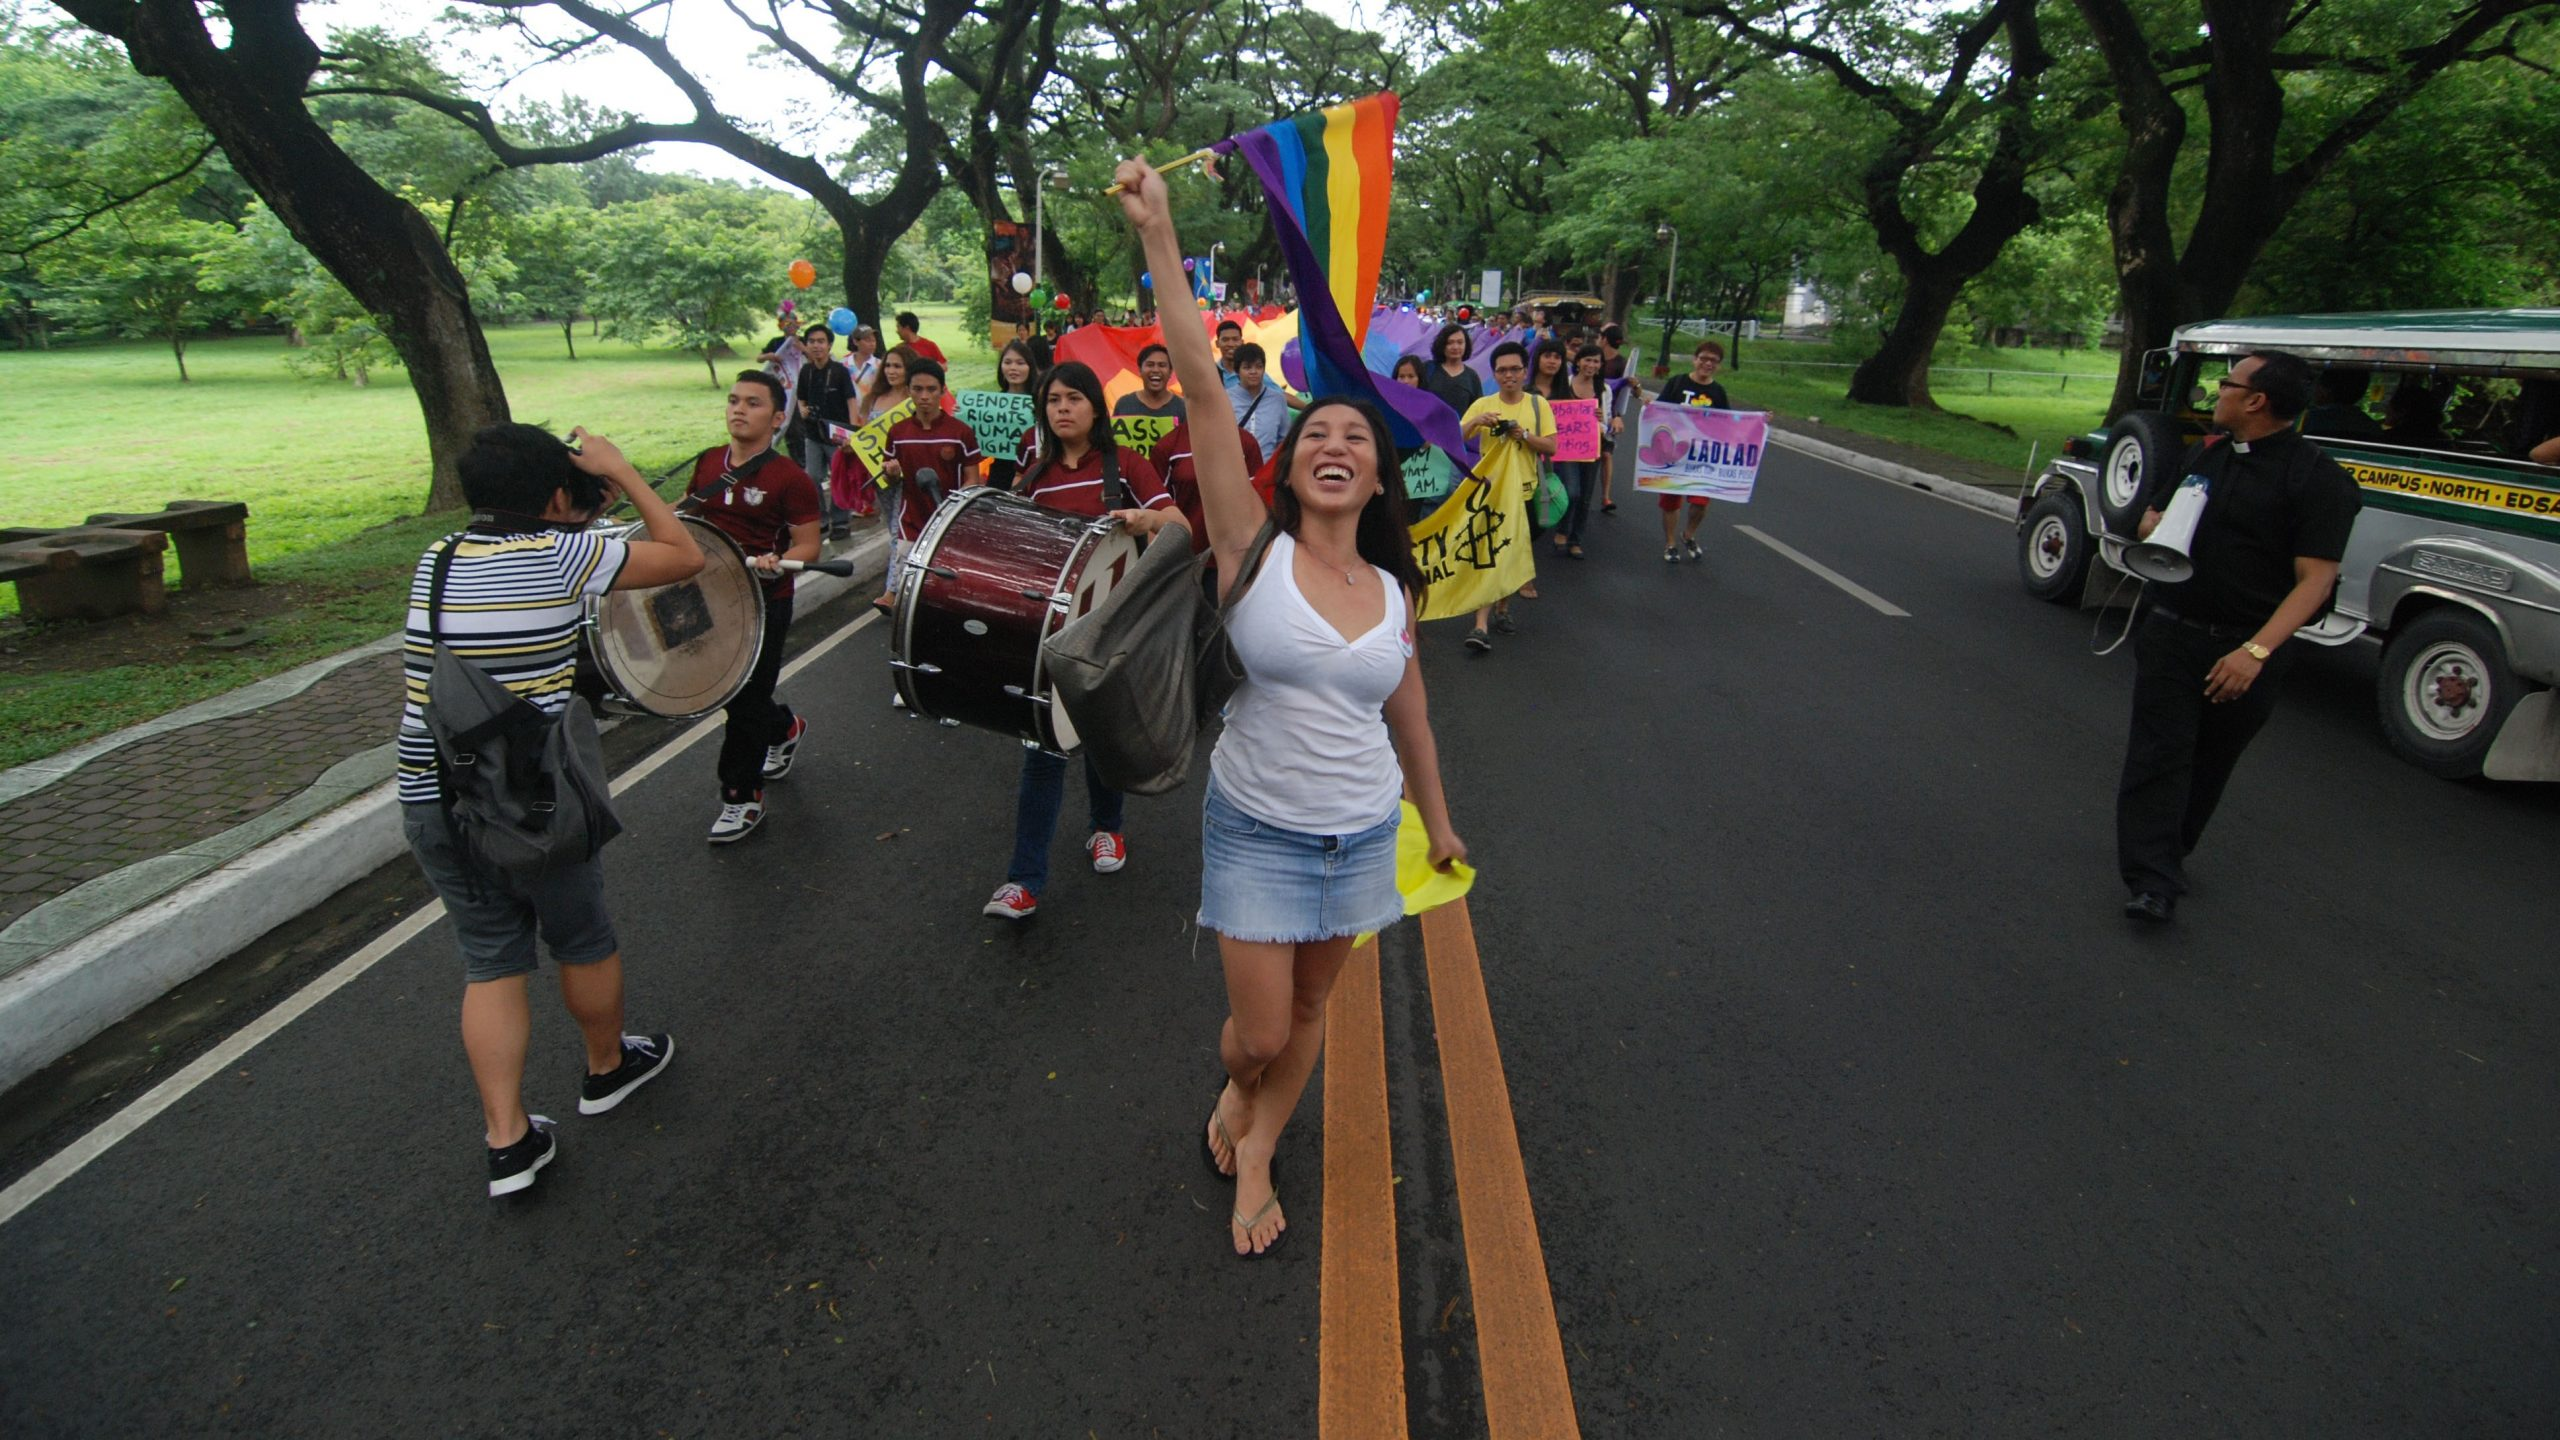 This is a film still from OUT RUN (d. S. Leo Chiang & Johnny Symons, 2016) screening at QE: Docs4Pride (JULY 2020).